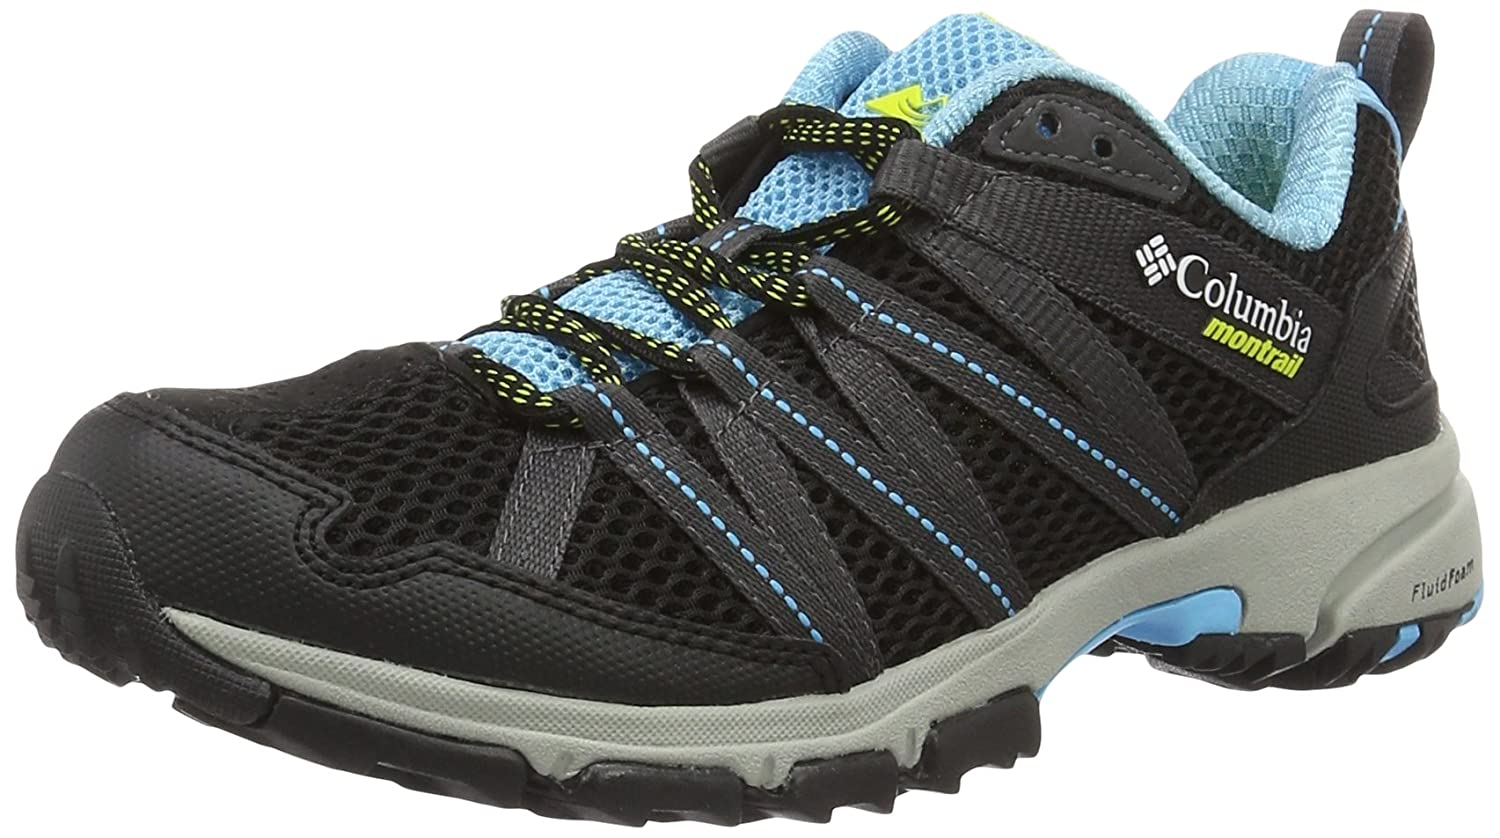 Columbia Montrail Women's Mountain Masochist III Running Shoe B01HCKRAOE 6.5 B(M) US|Bounty Blue, Black